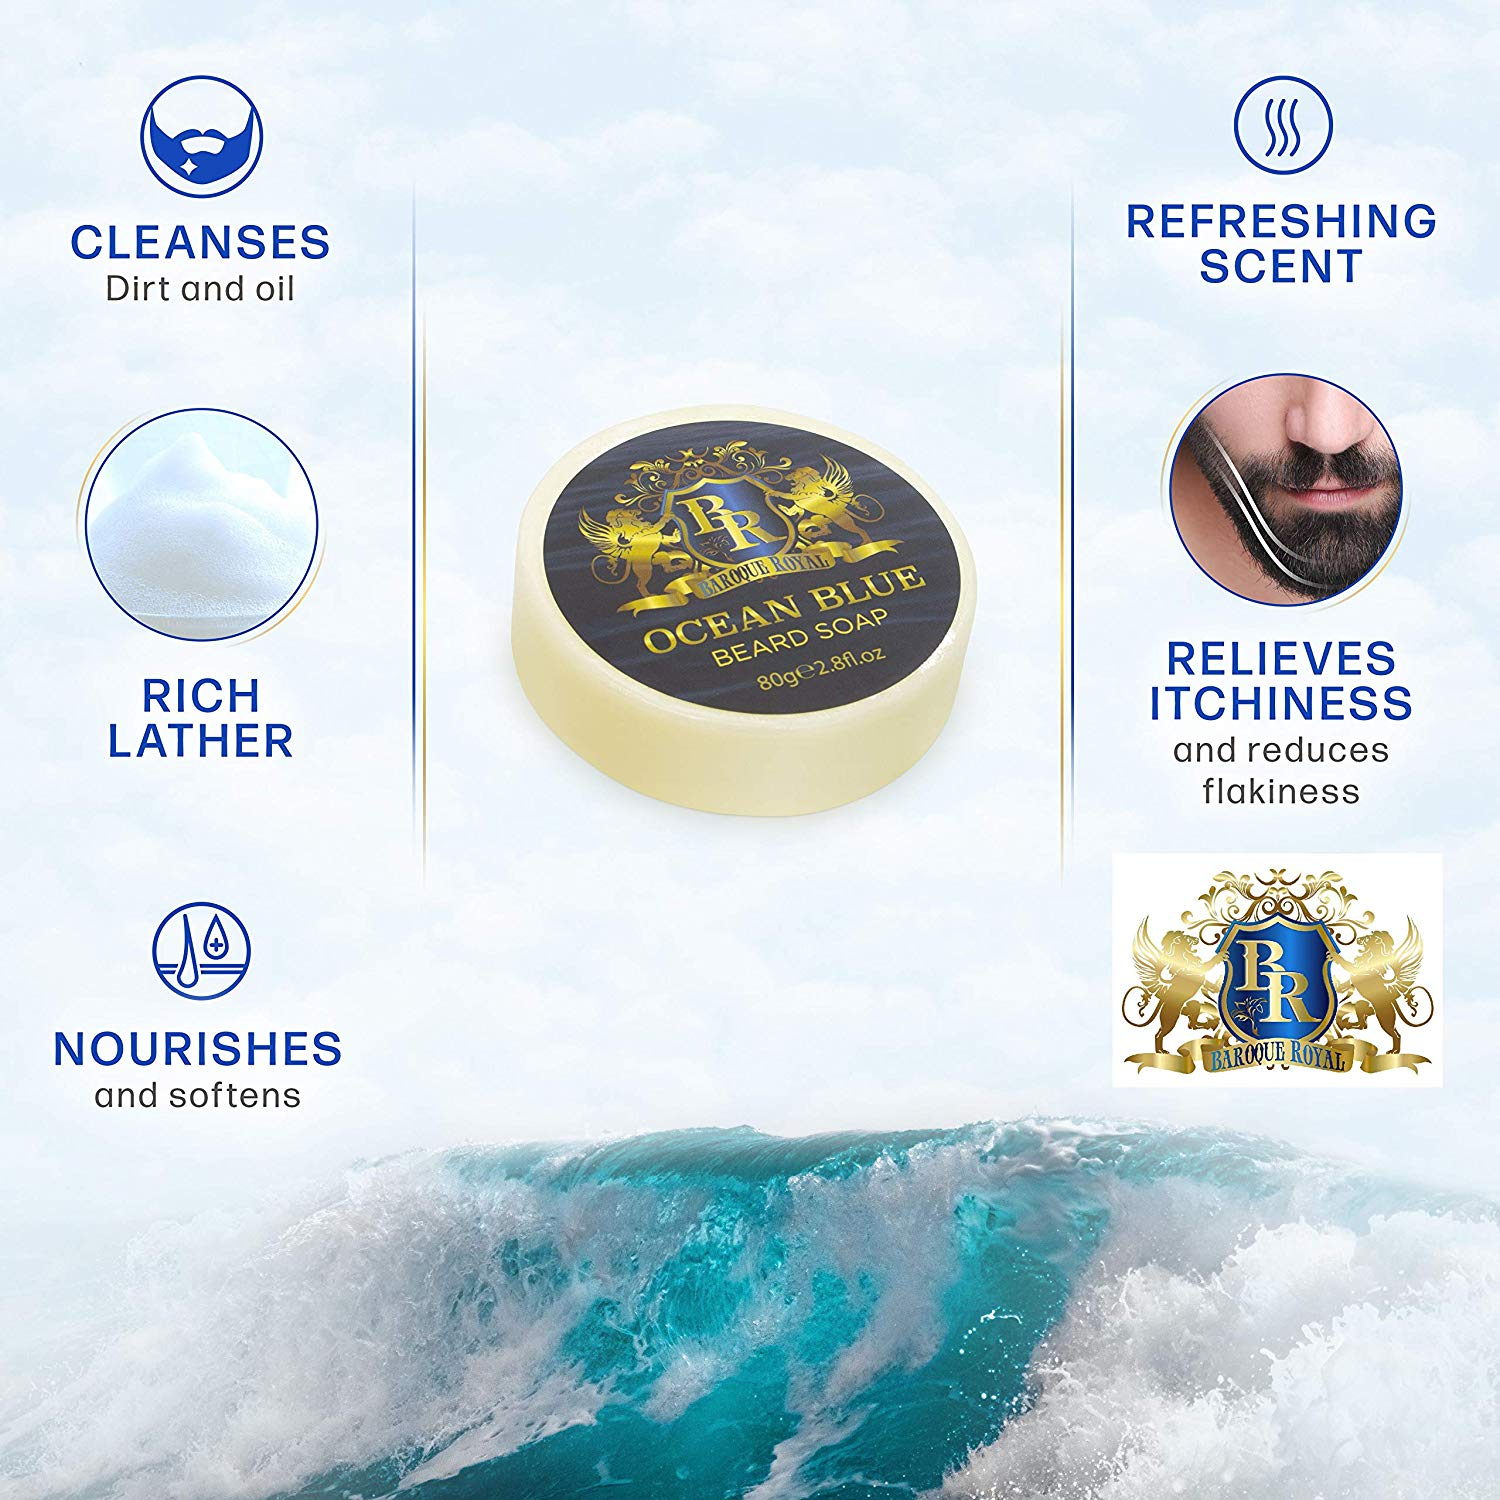 Baroque Royal - Beard Shaving Soap - Info